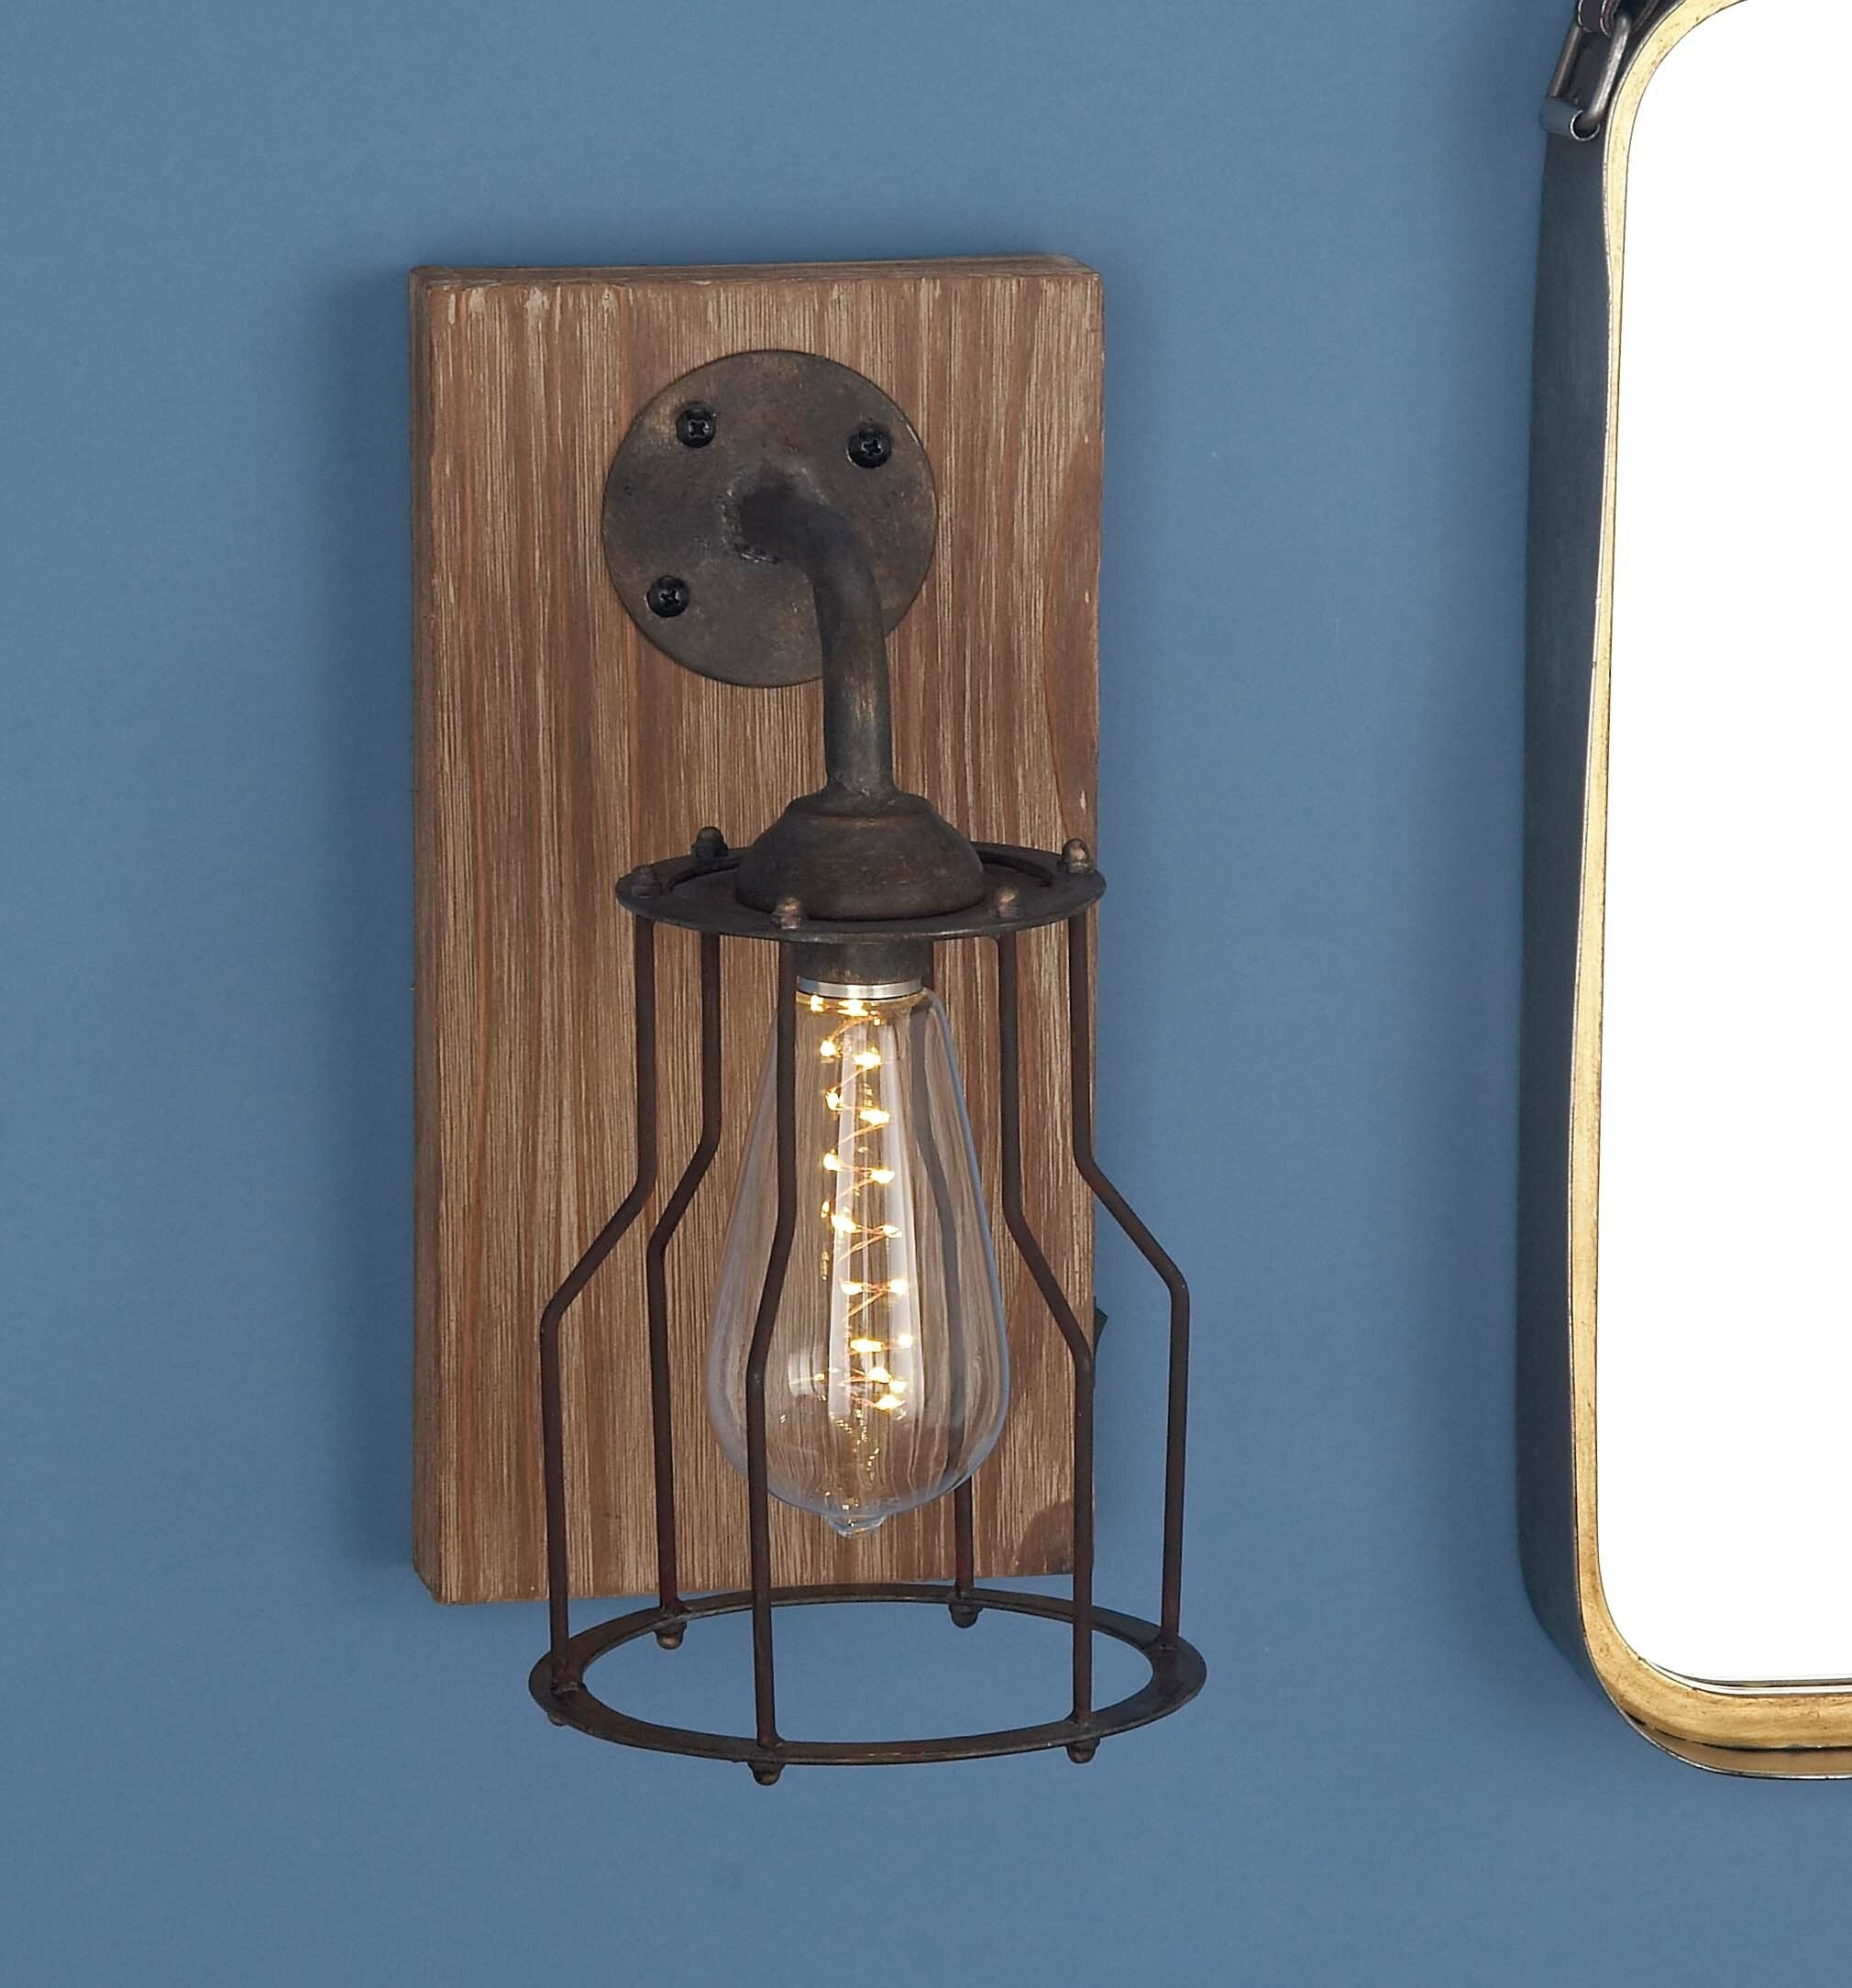 Battery Operated Wall Lights You Ll Love In 2021 Visualhunt